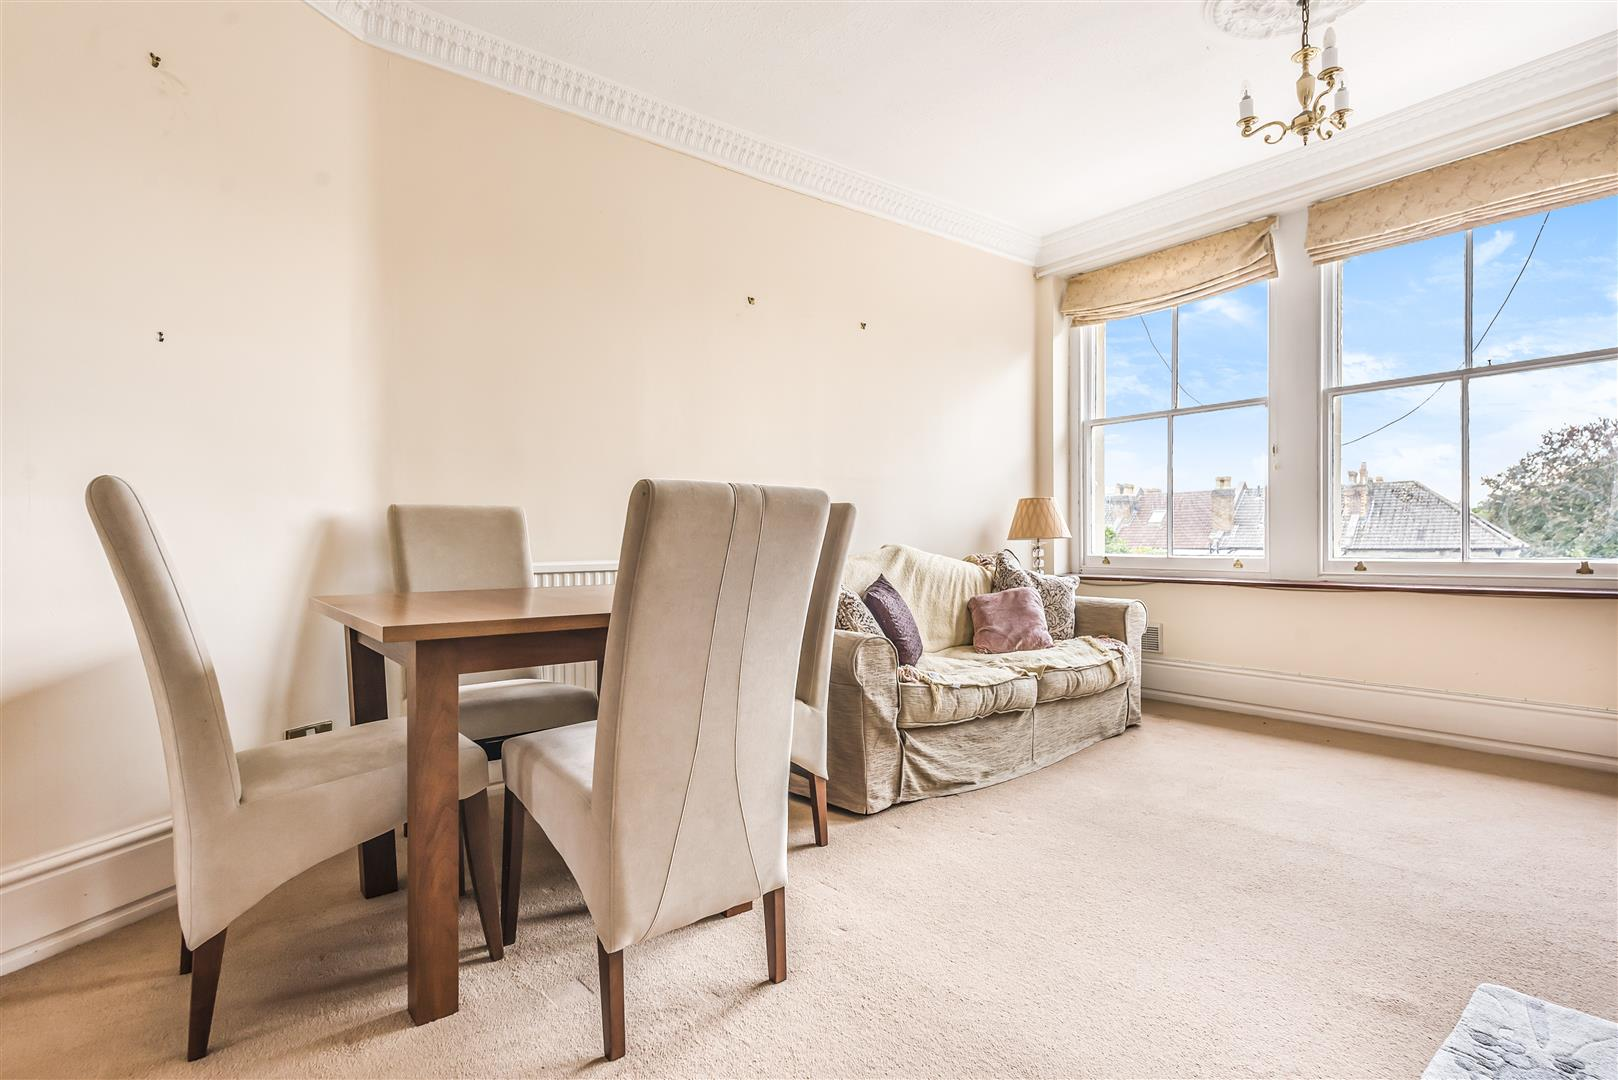 Images for CLIFTON FLAT FOR UPDATING & REDUCED PRICE EAID:hollismoapi BID:11